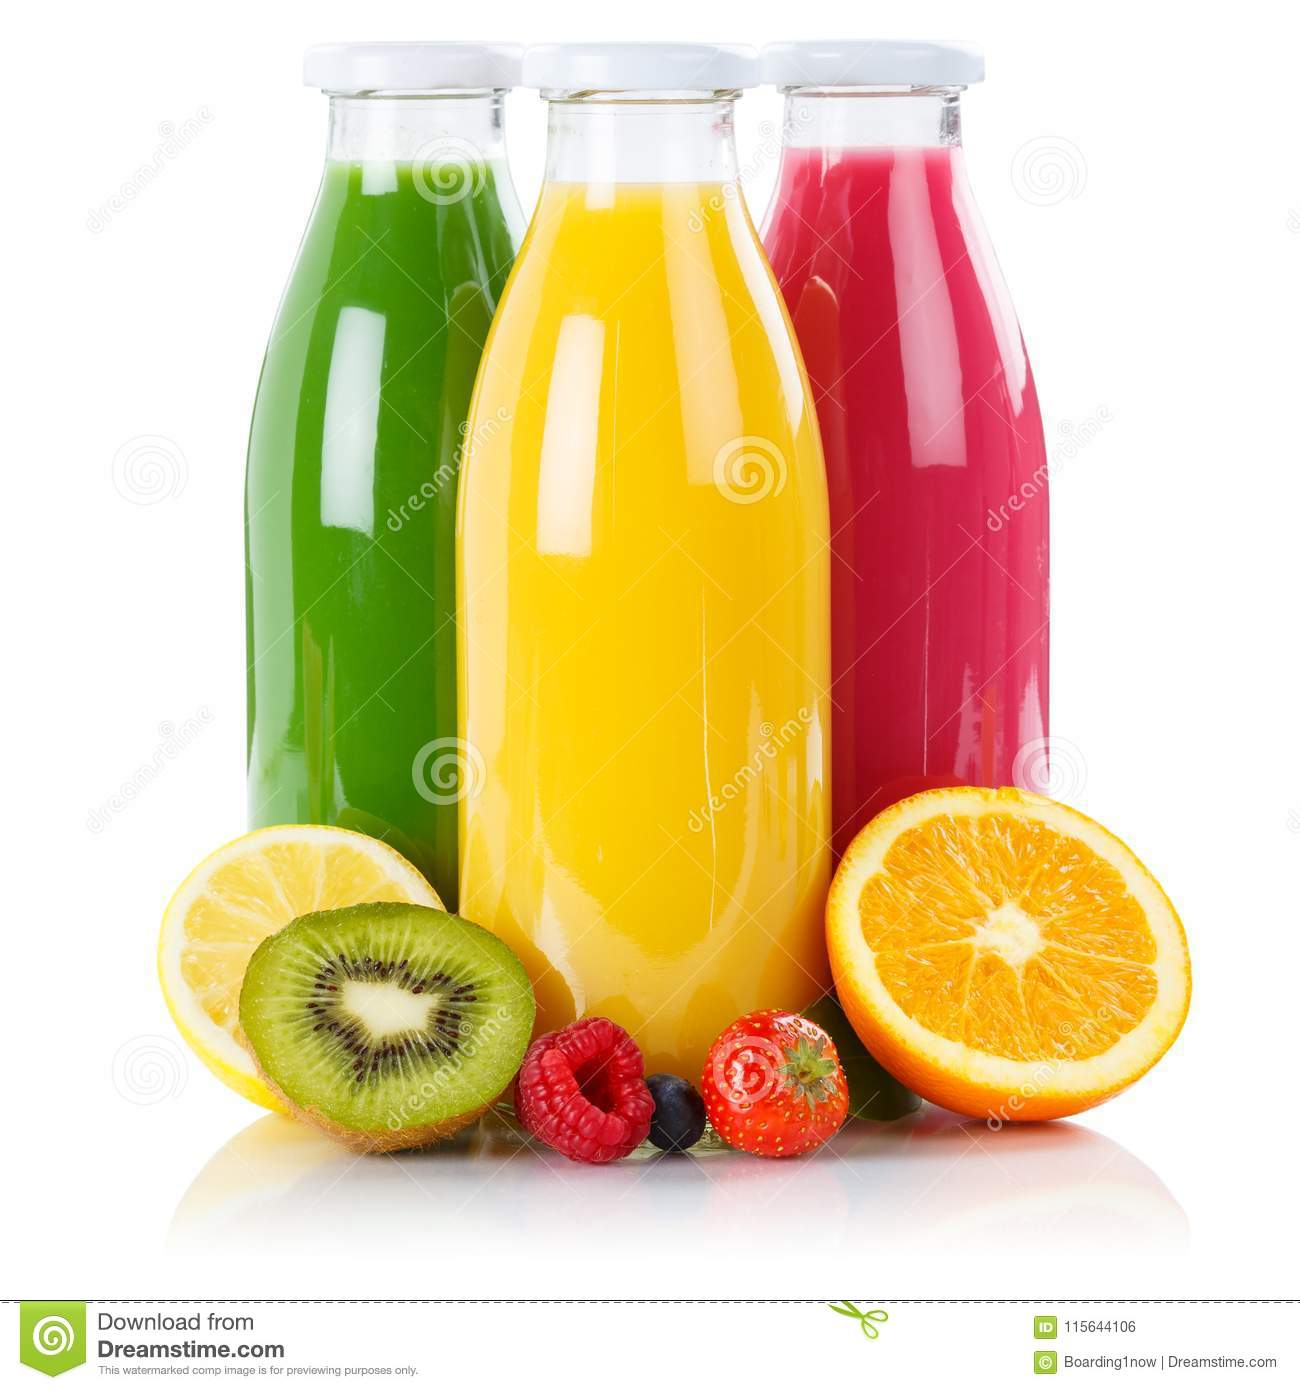 Fruit juice smoothie fruits smoothies in bottle square isolated